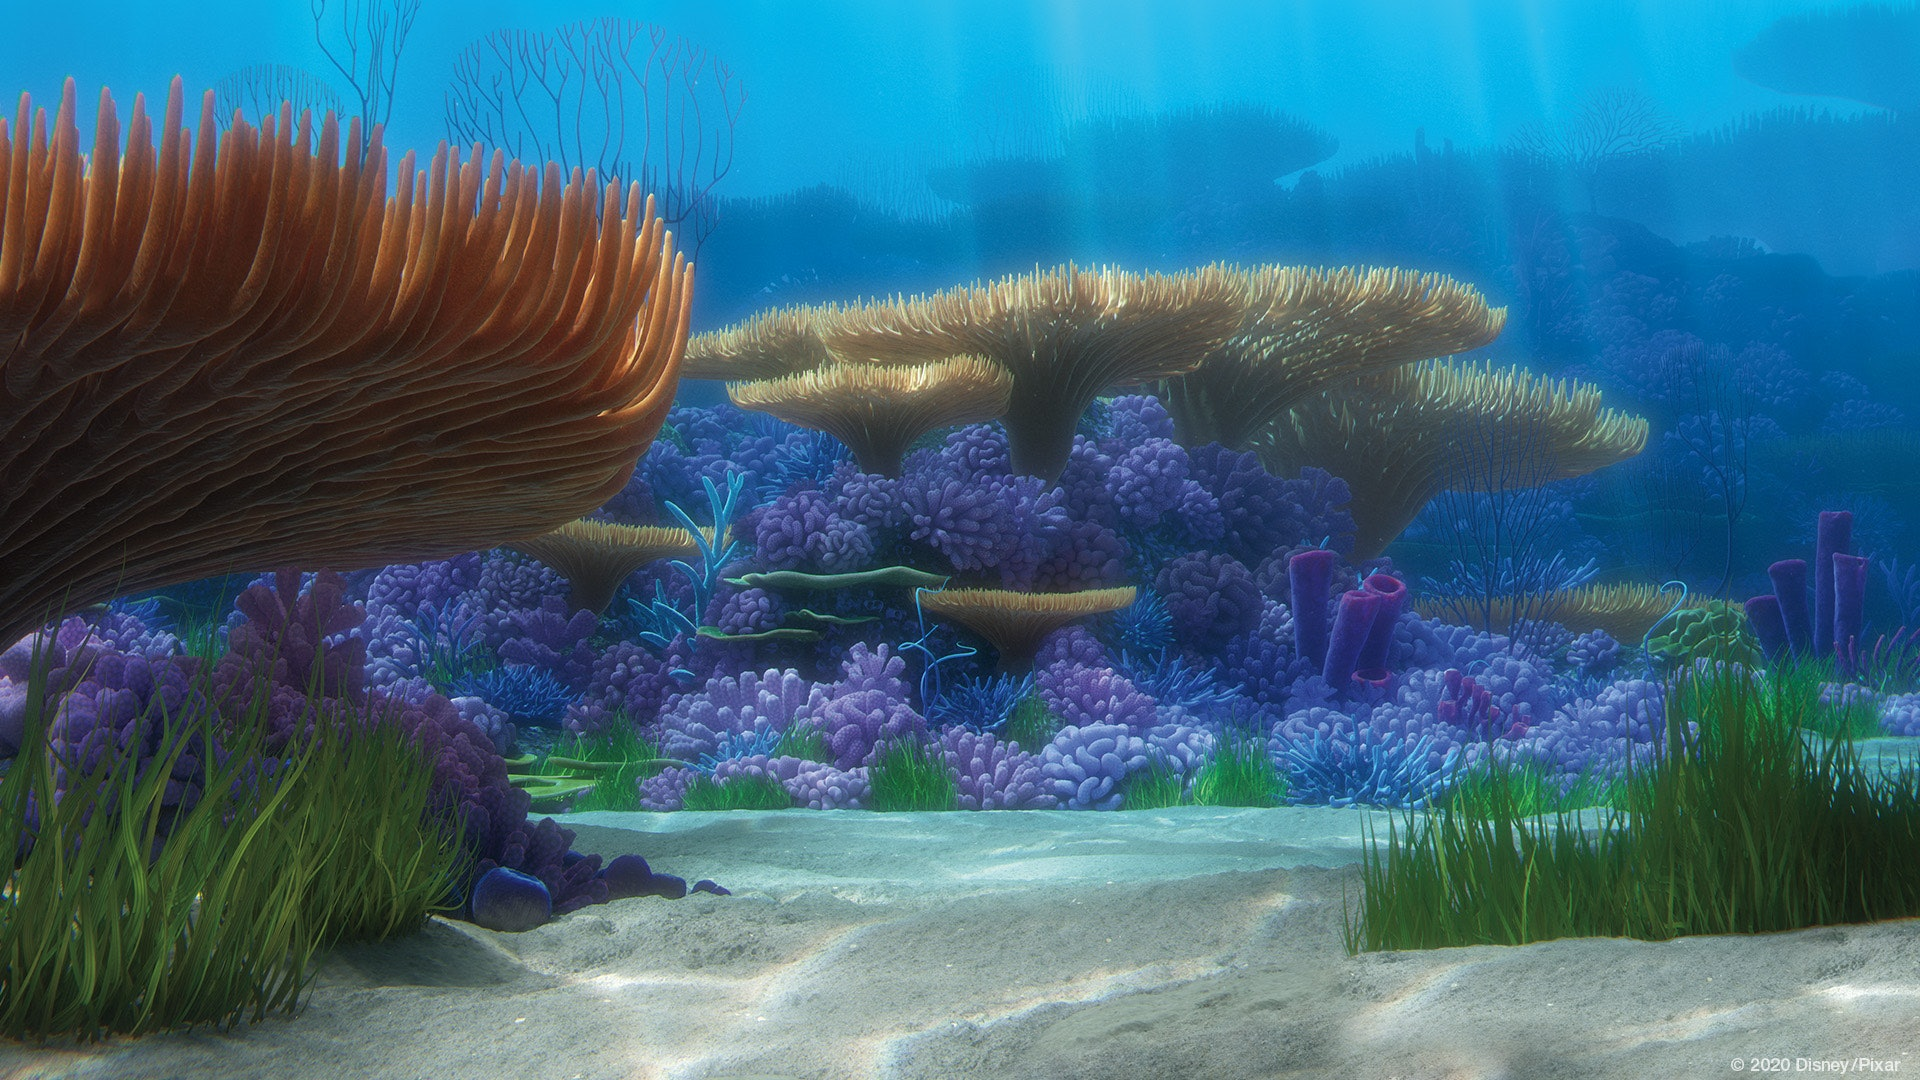 Pixar S Free Zoom Backgrounds Jazz Up Meetings With Finding Nemo